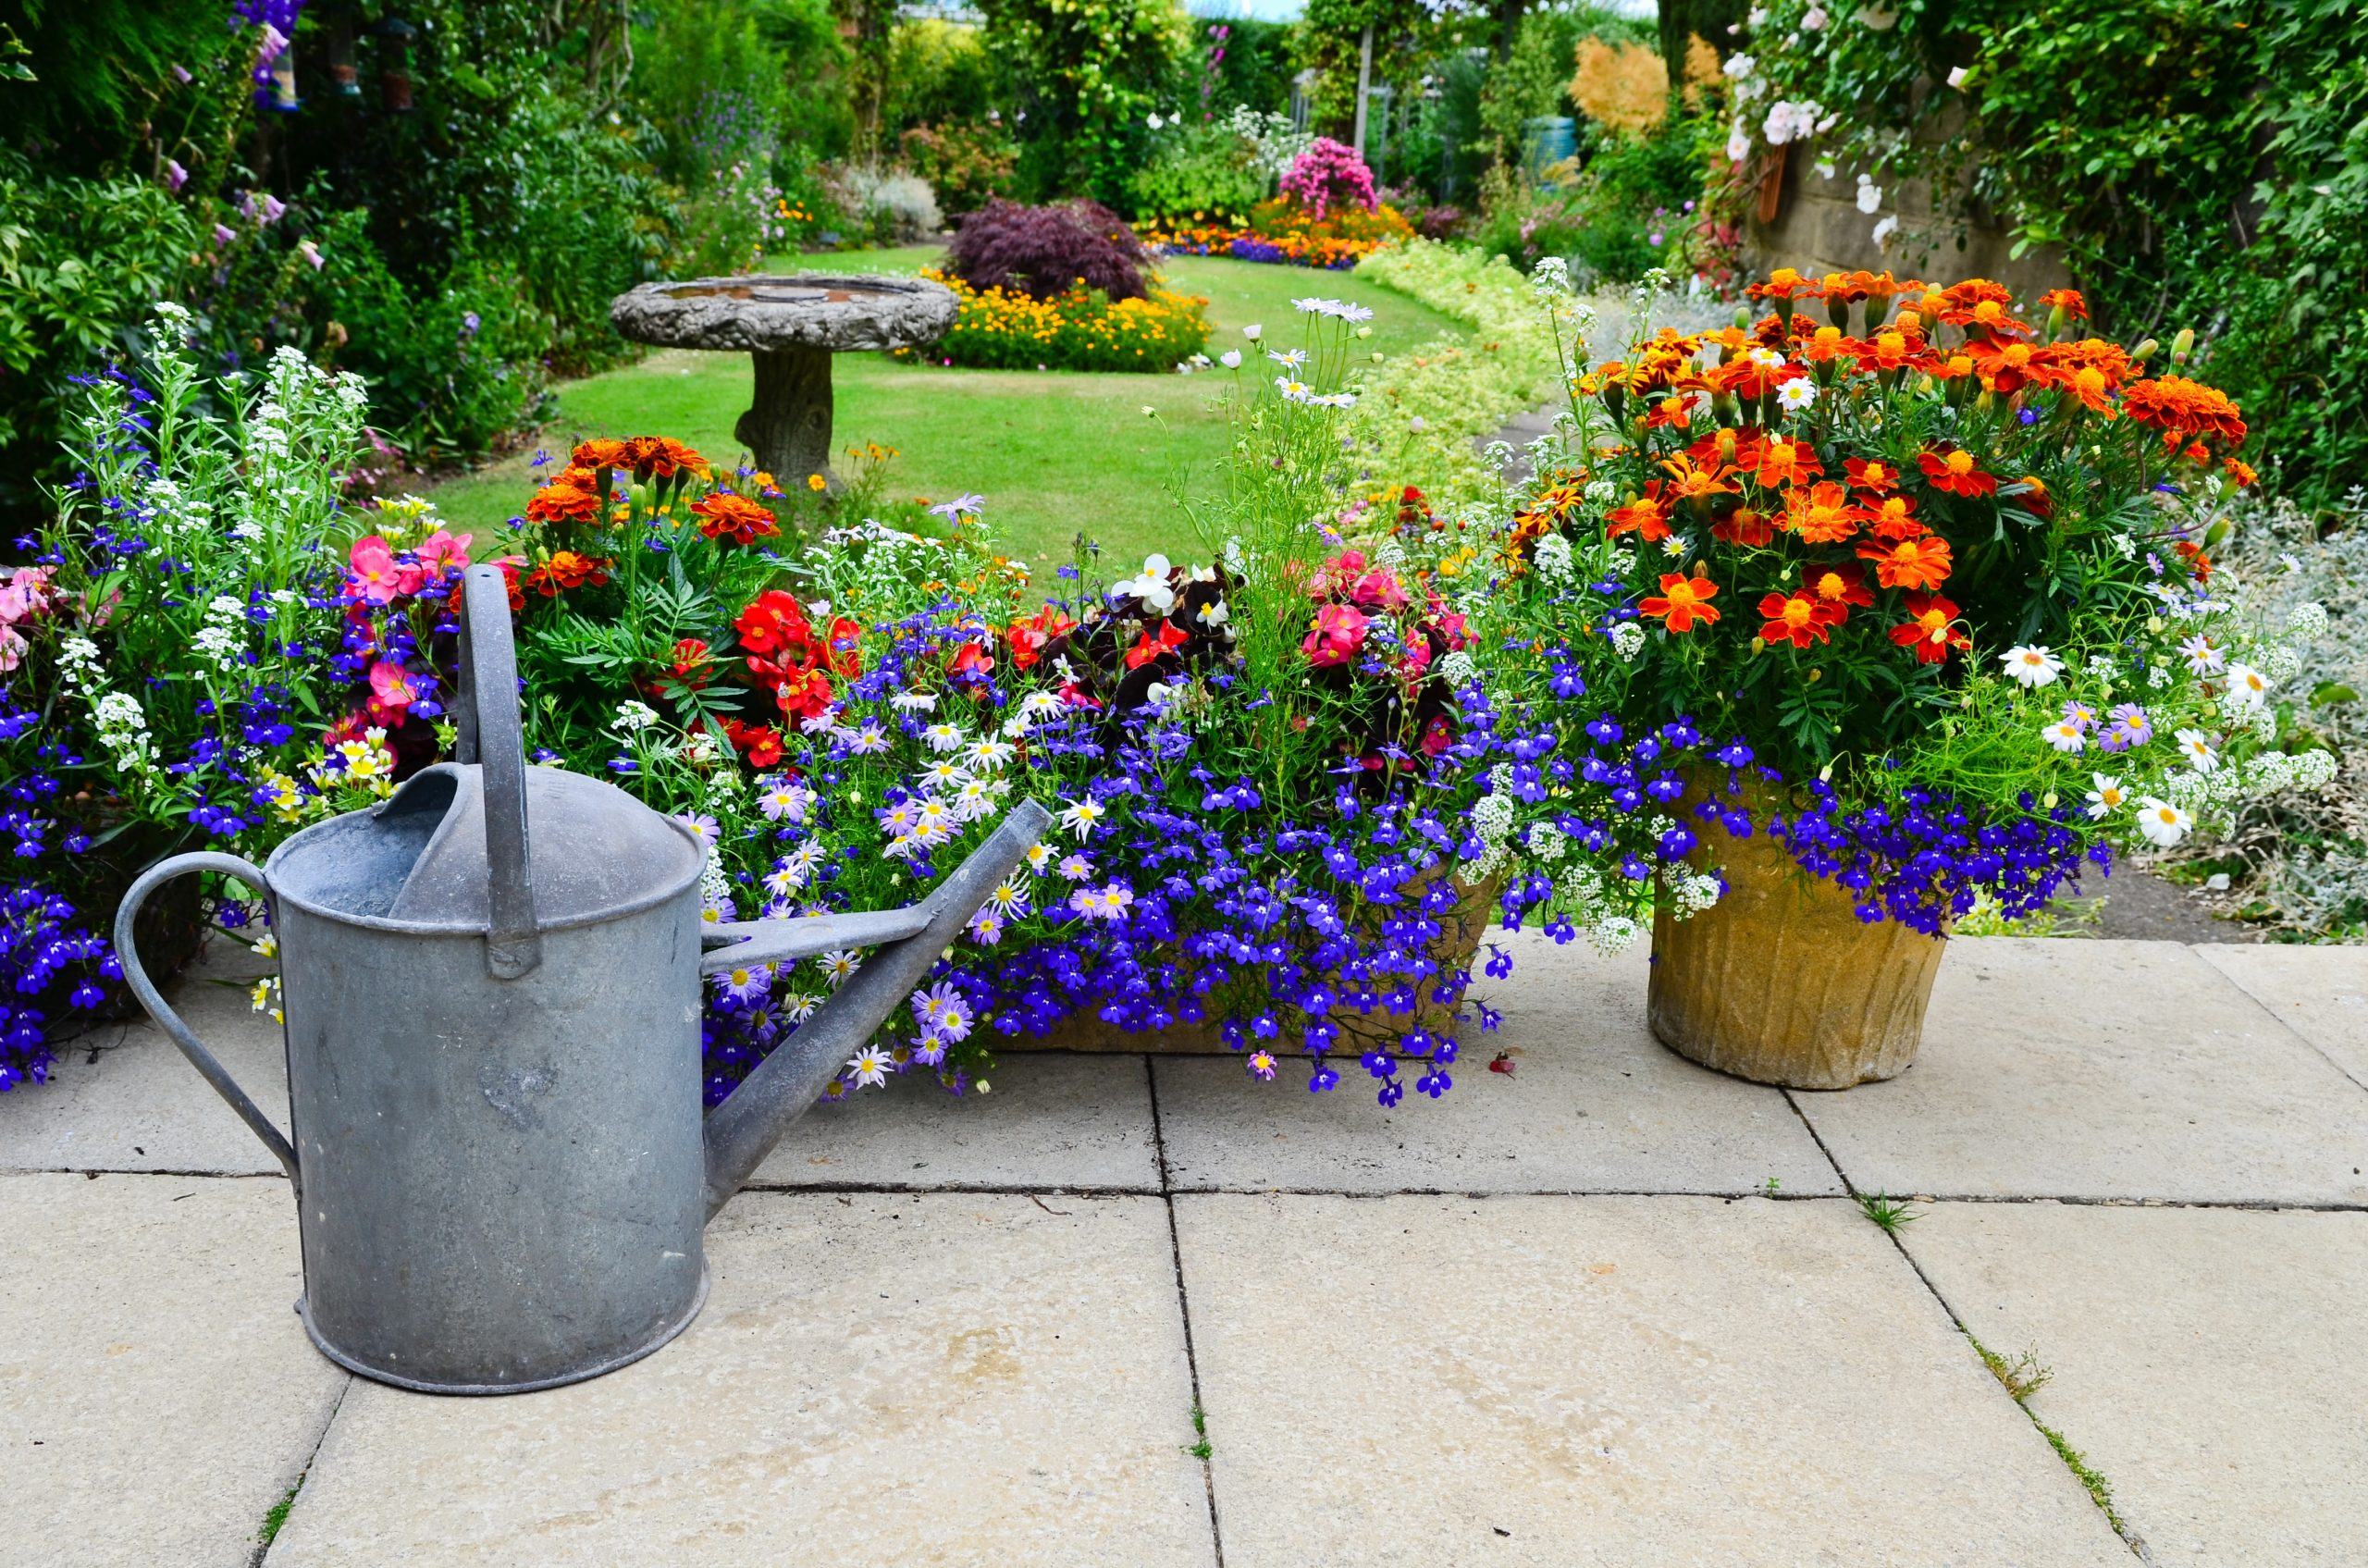 https://oasiswatering.co.uk/wp-content/uploads/2021/01/English-Gardens-in-bloomshutterstock_146719973-scaled.jpg